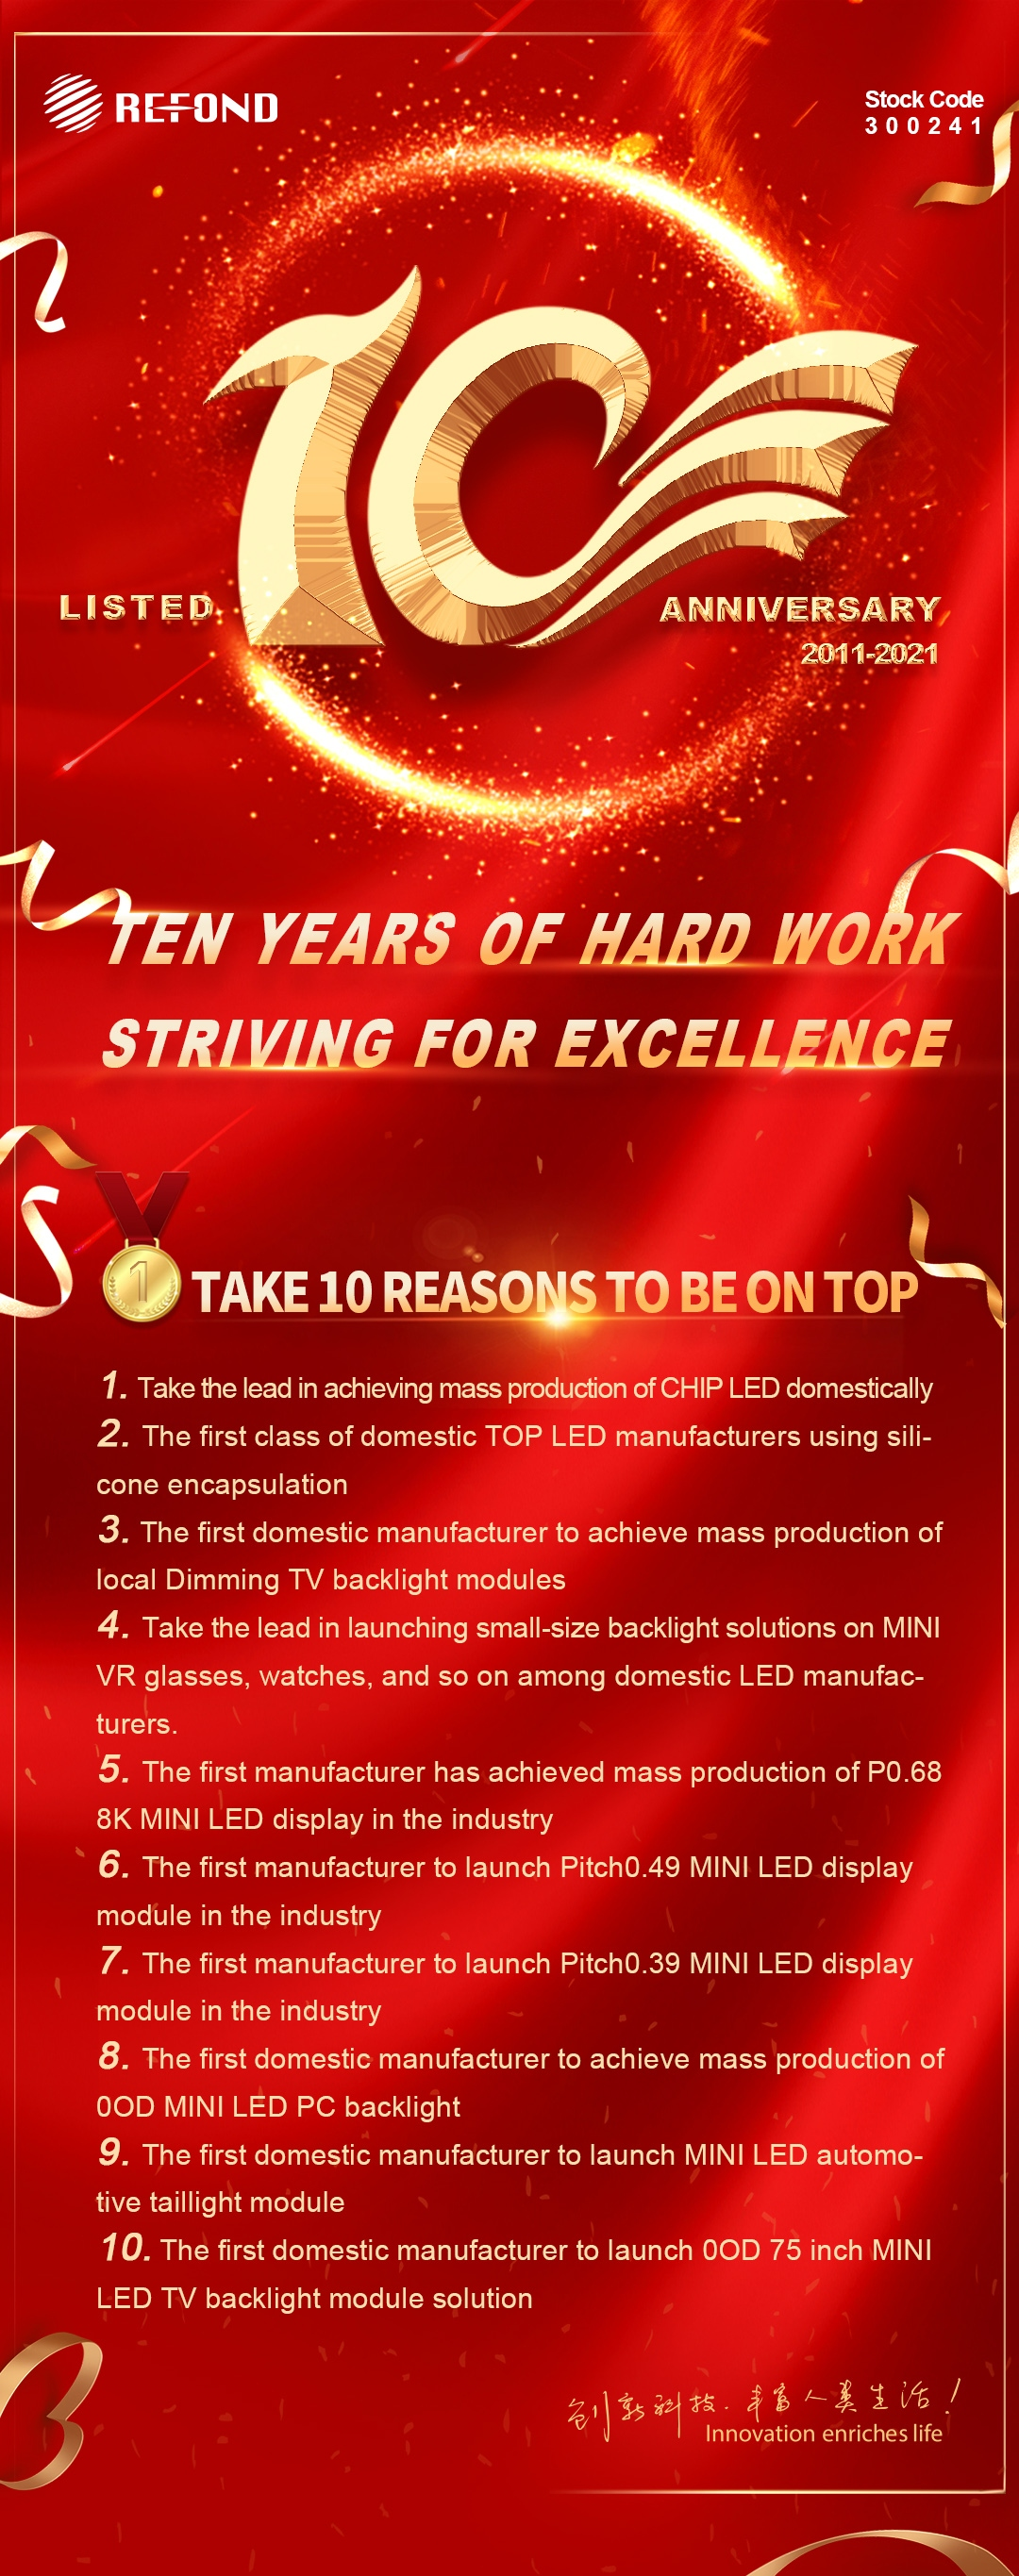 Warmly celebrate the 10th anniversary of the listing of Shenzhen Refond Optoelectronics Co., Ltd.